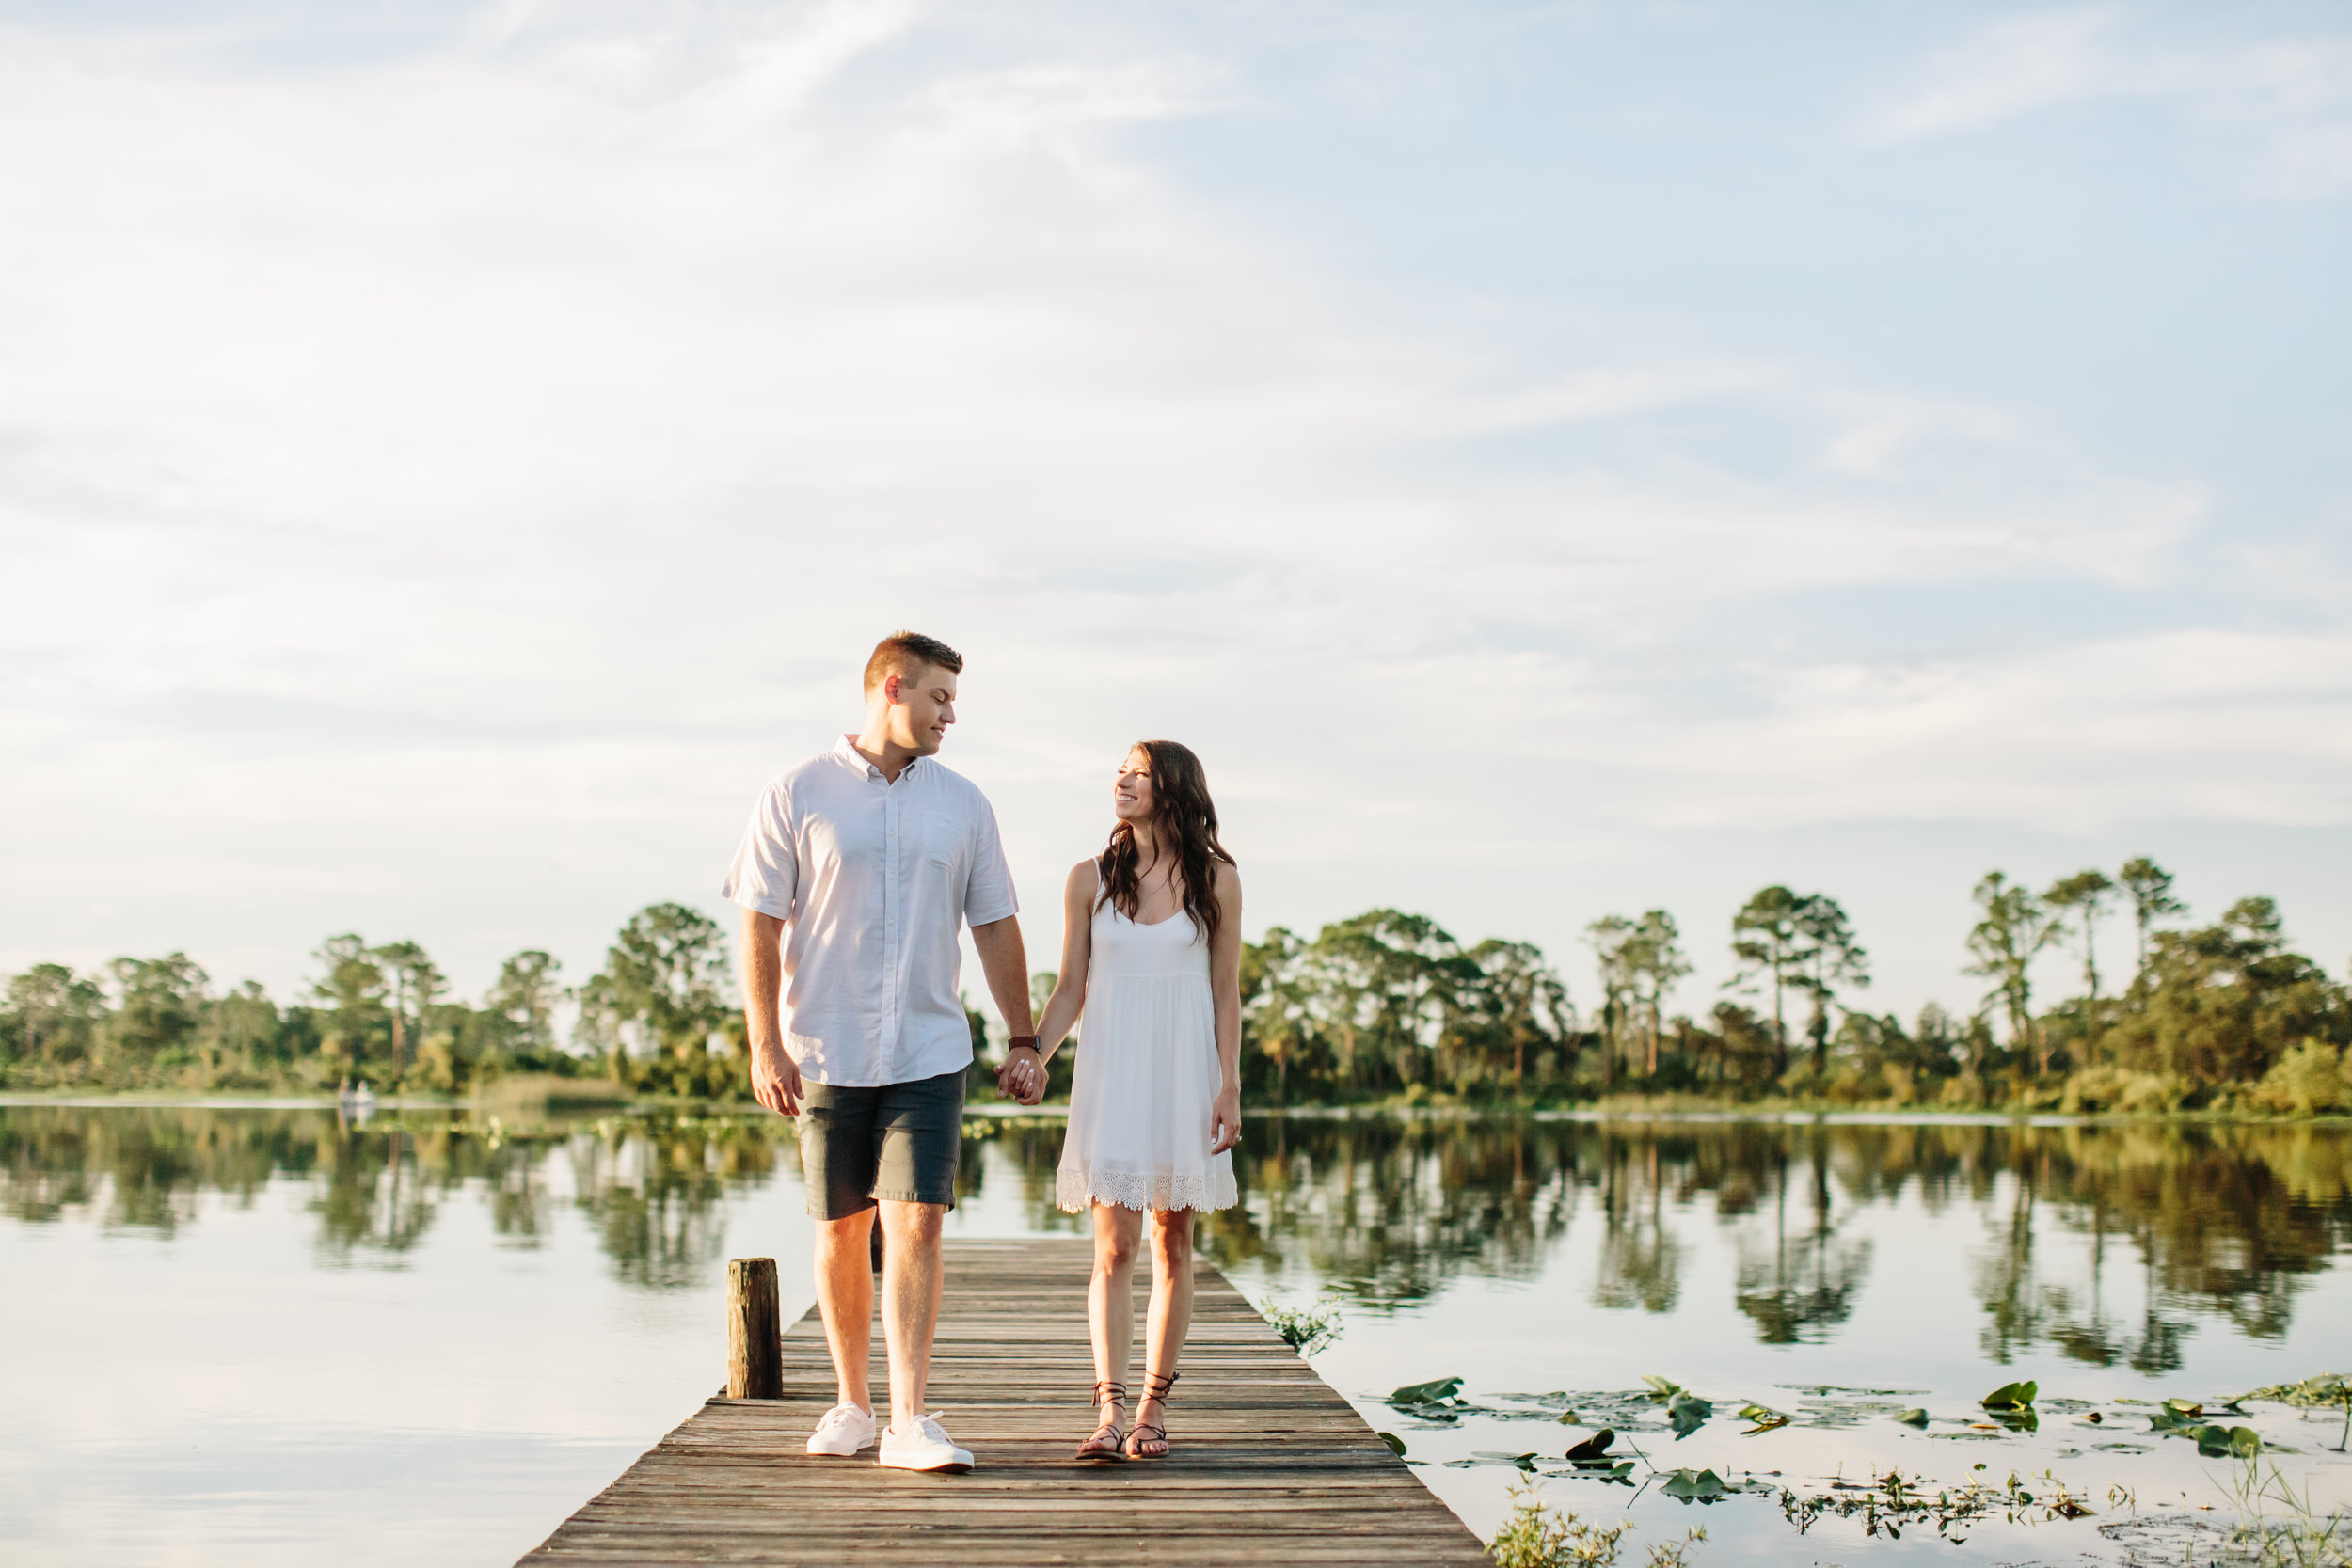 2018.08.10 Jay and Lauren Engagement Elopement Session at Fox Lake Park Titusville THE HORNES-145.jpg